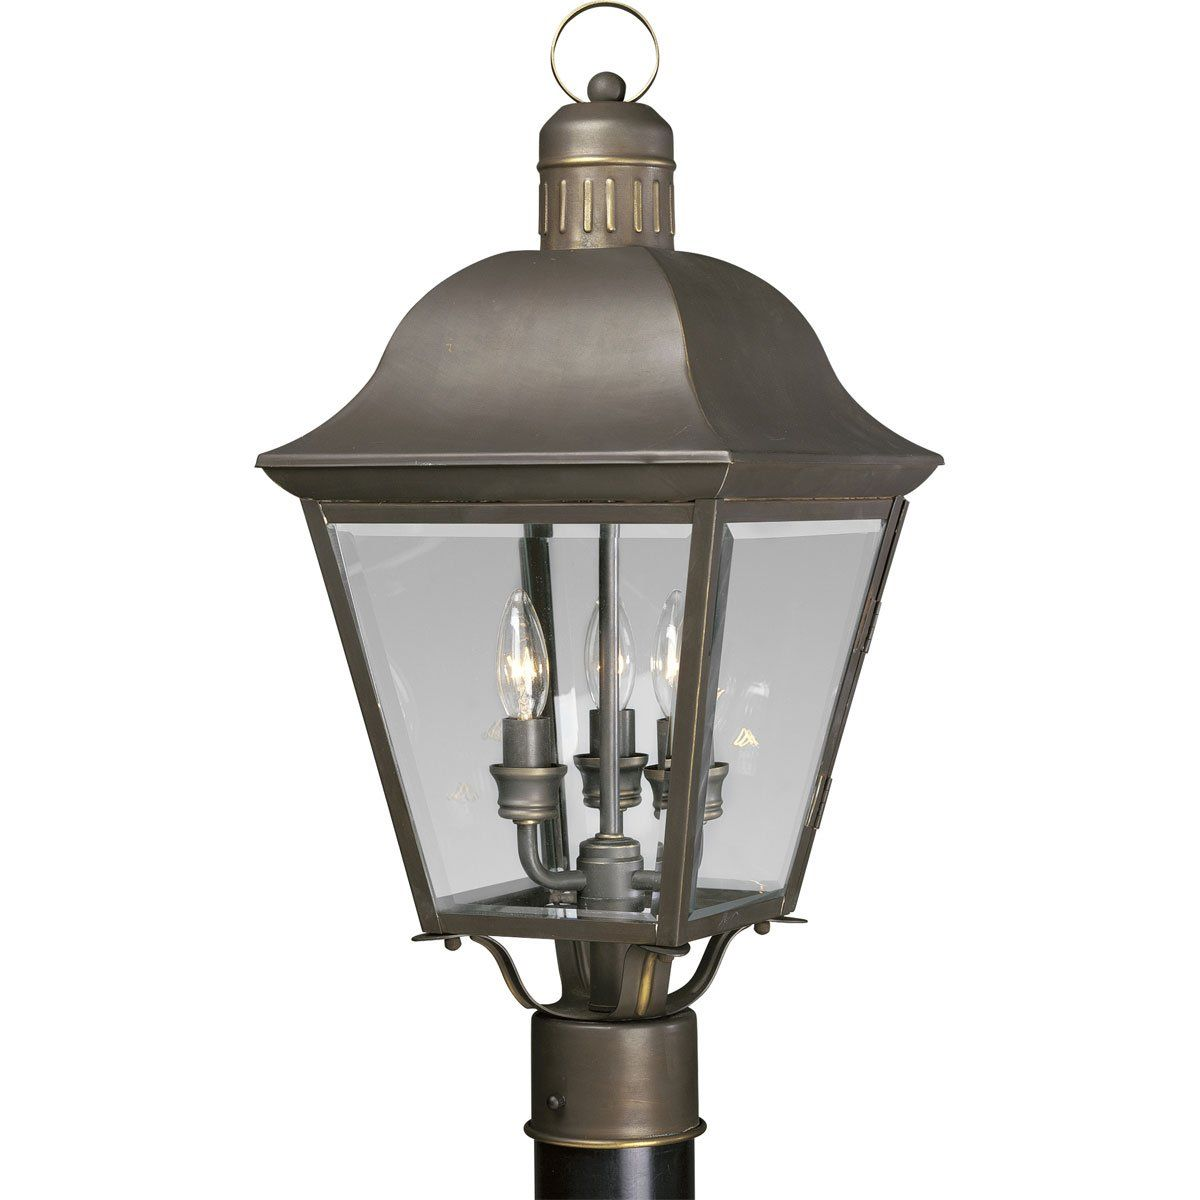 Progress Lighting P5487 20 3 Light Andover Post Lantern Antique Bronze Want To Know More Click On The Image Outdoor Post Lights Lantern Post Post Lights